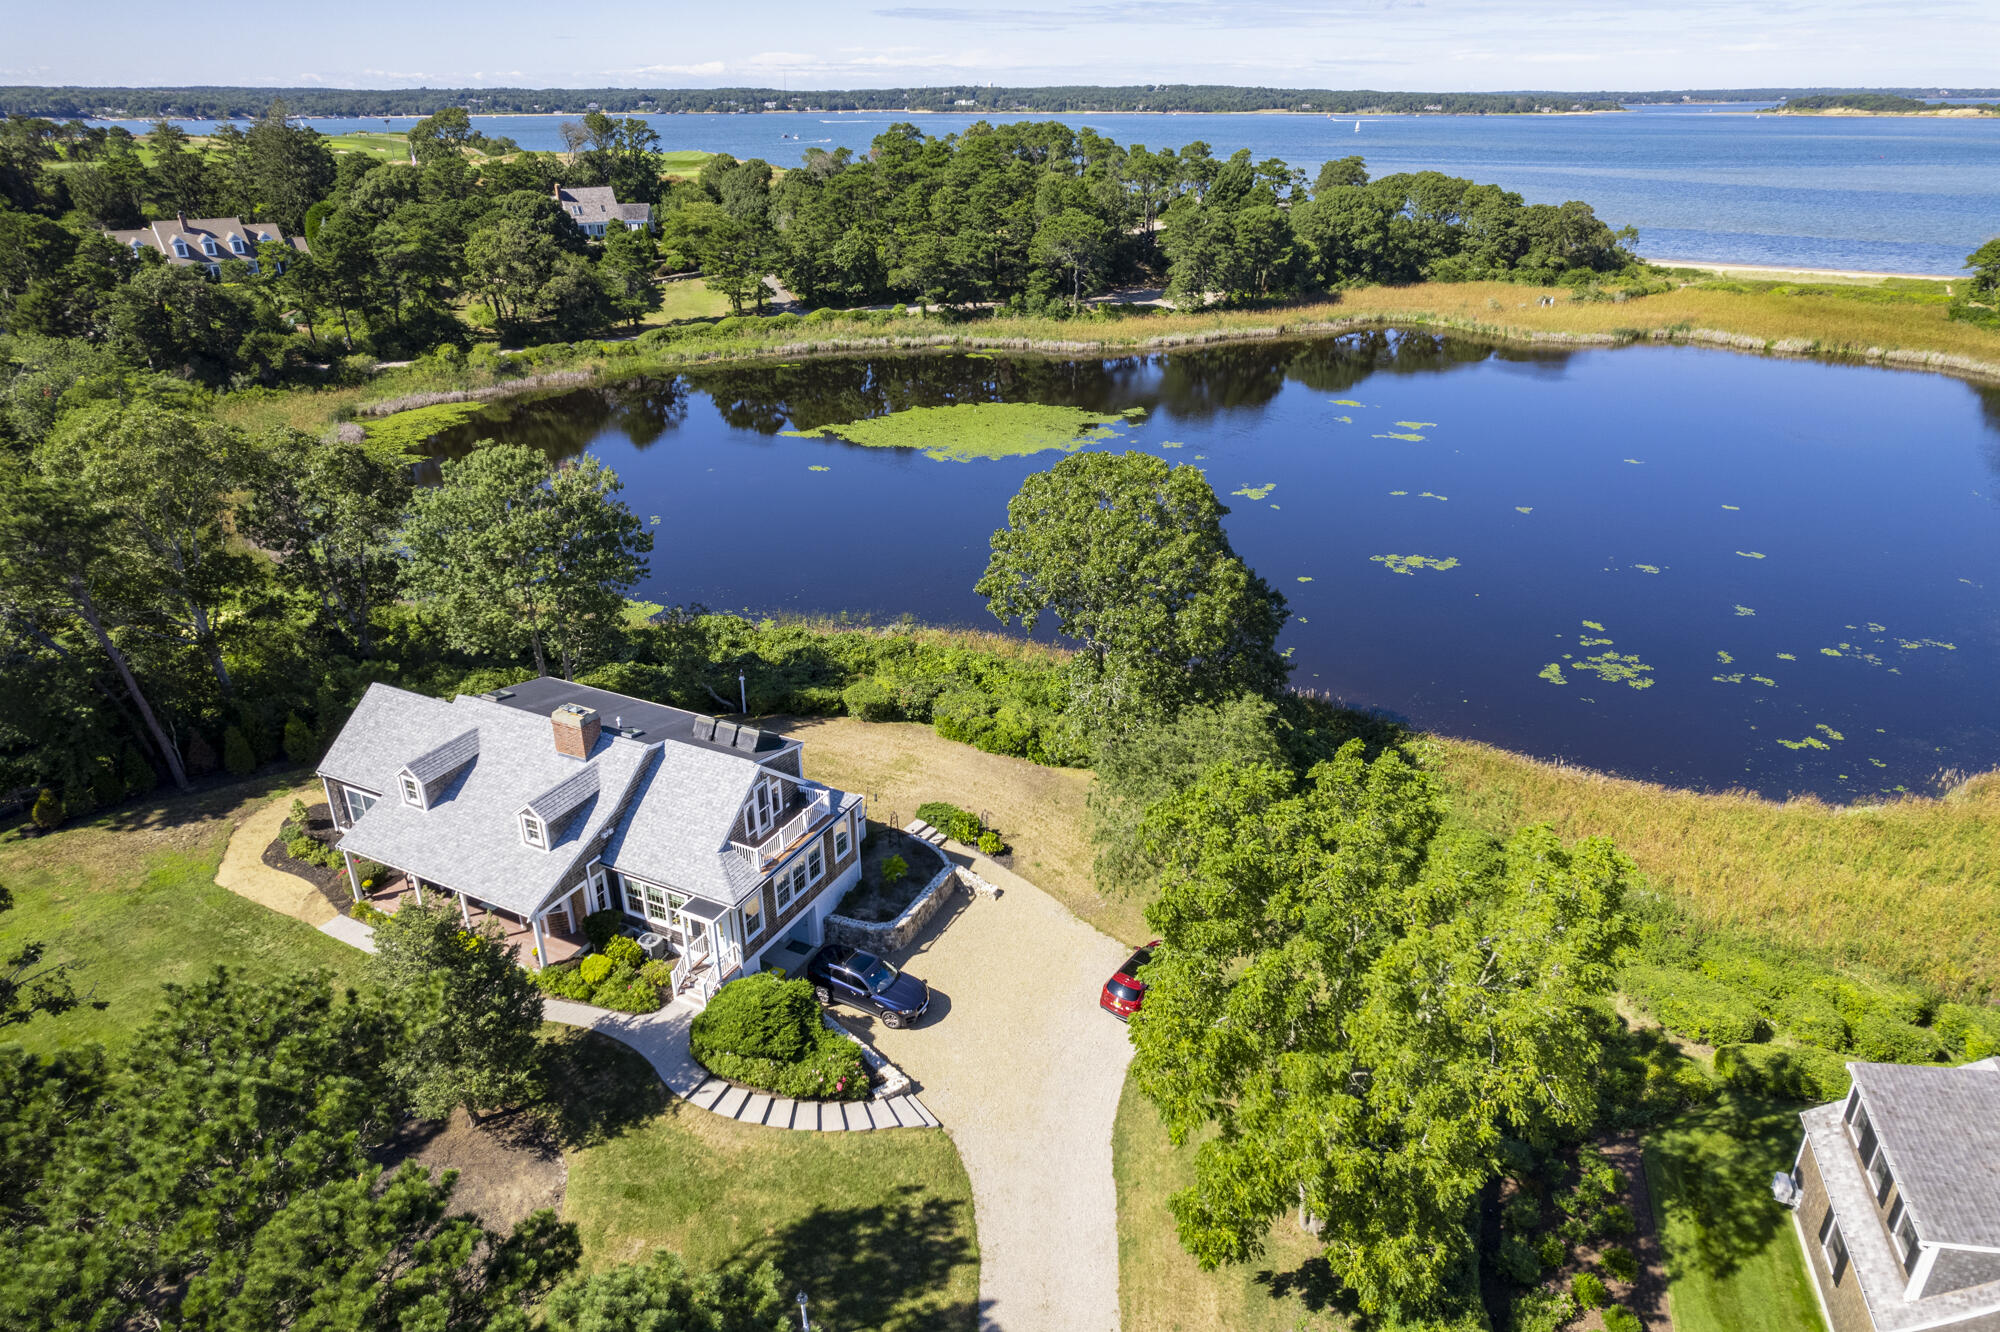 69 Strong Island Road, Chatham MA, 02633 sales details